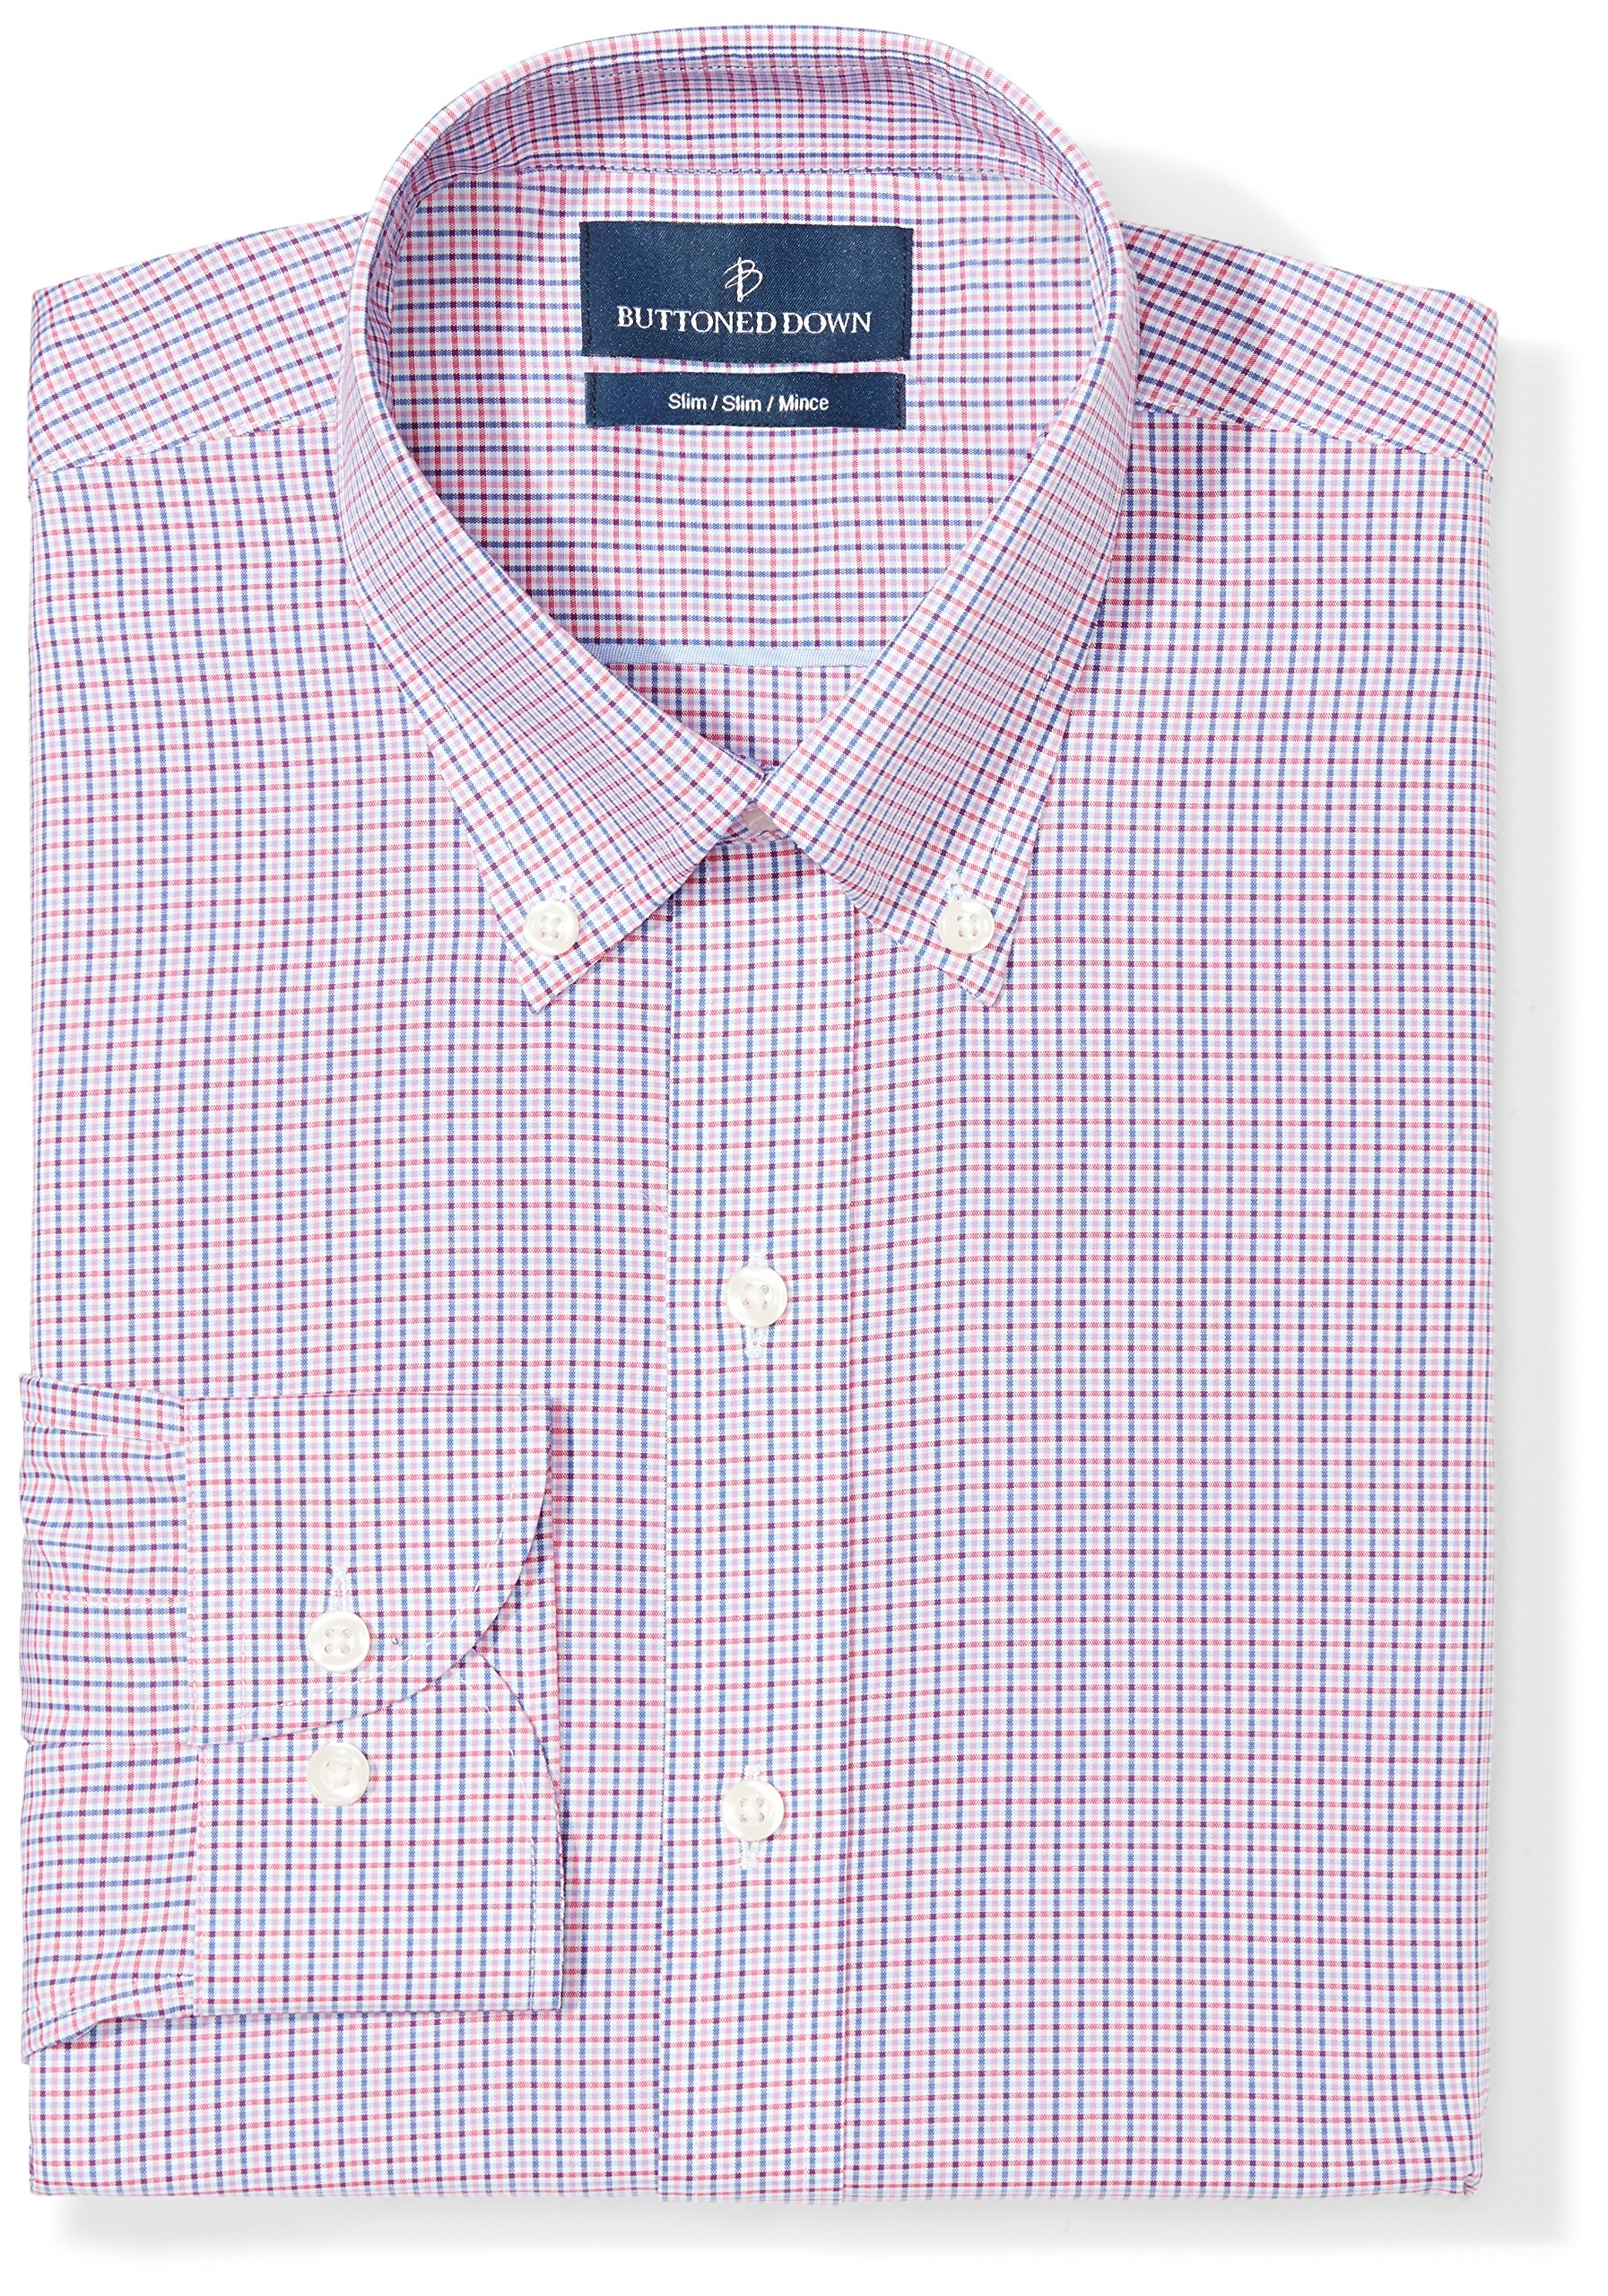 Buttoned Down Men's Slim Fit Button-Collar Pattern Non-Iron Dress Shirt, Berry/Red/Navy Small Tatersol, 16'' Neck 37'' Sleeve by Buttoned Down